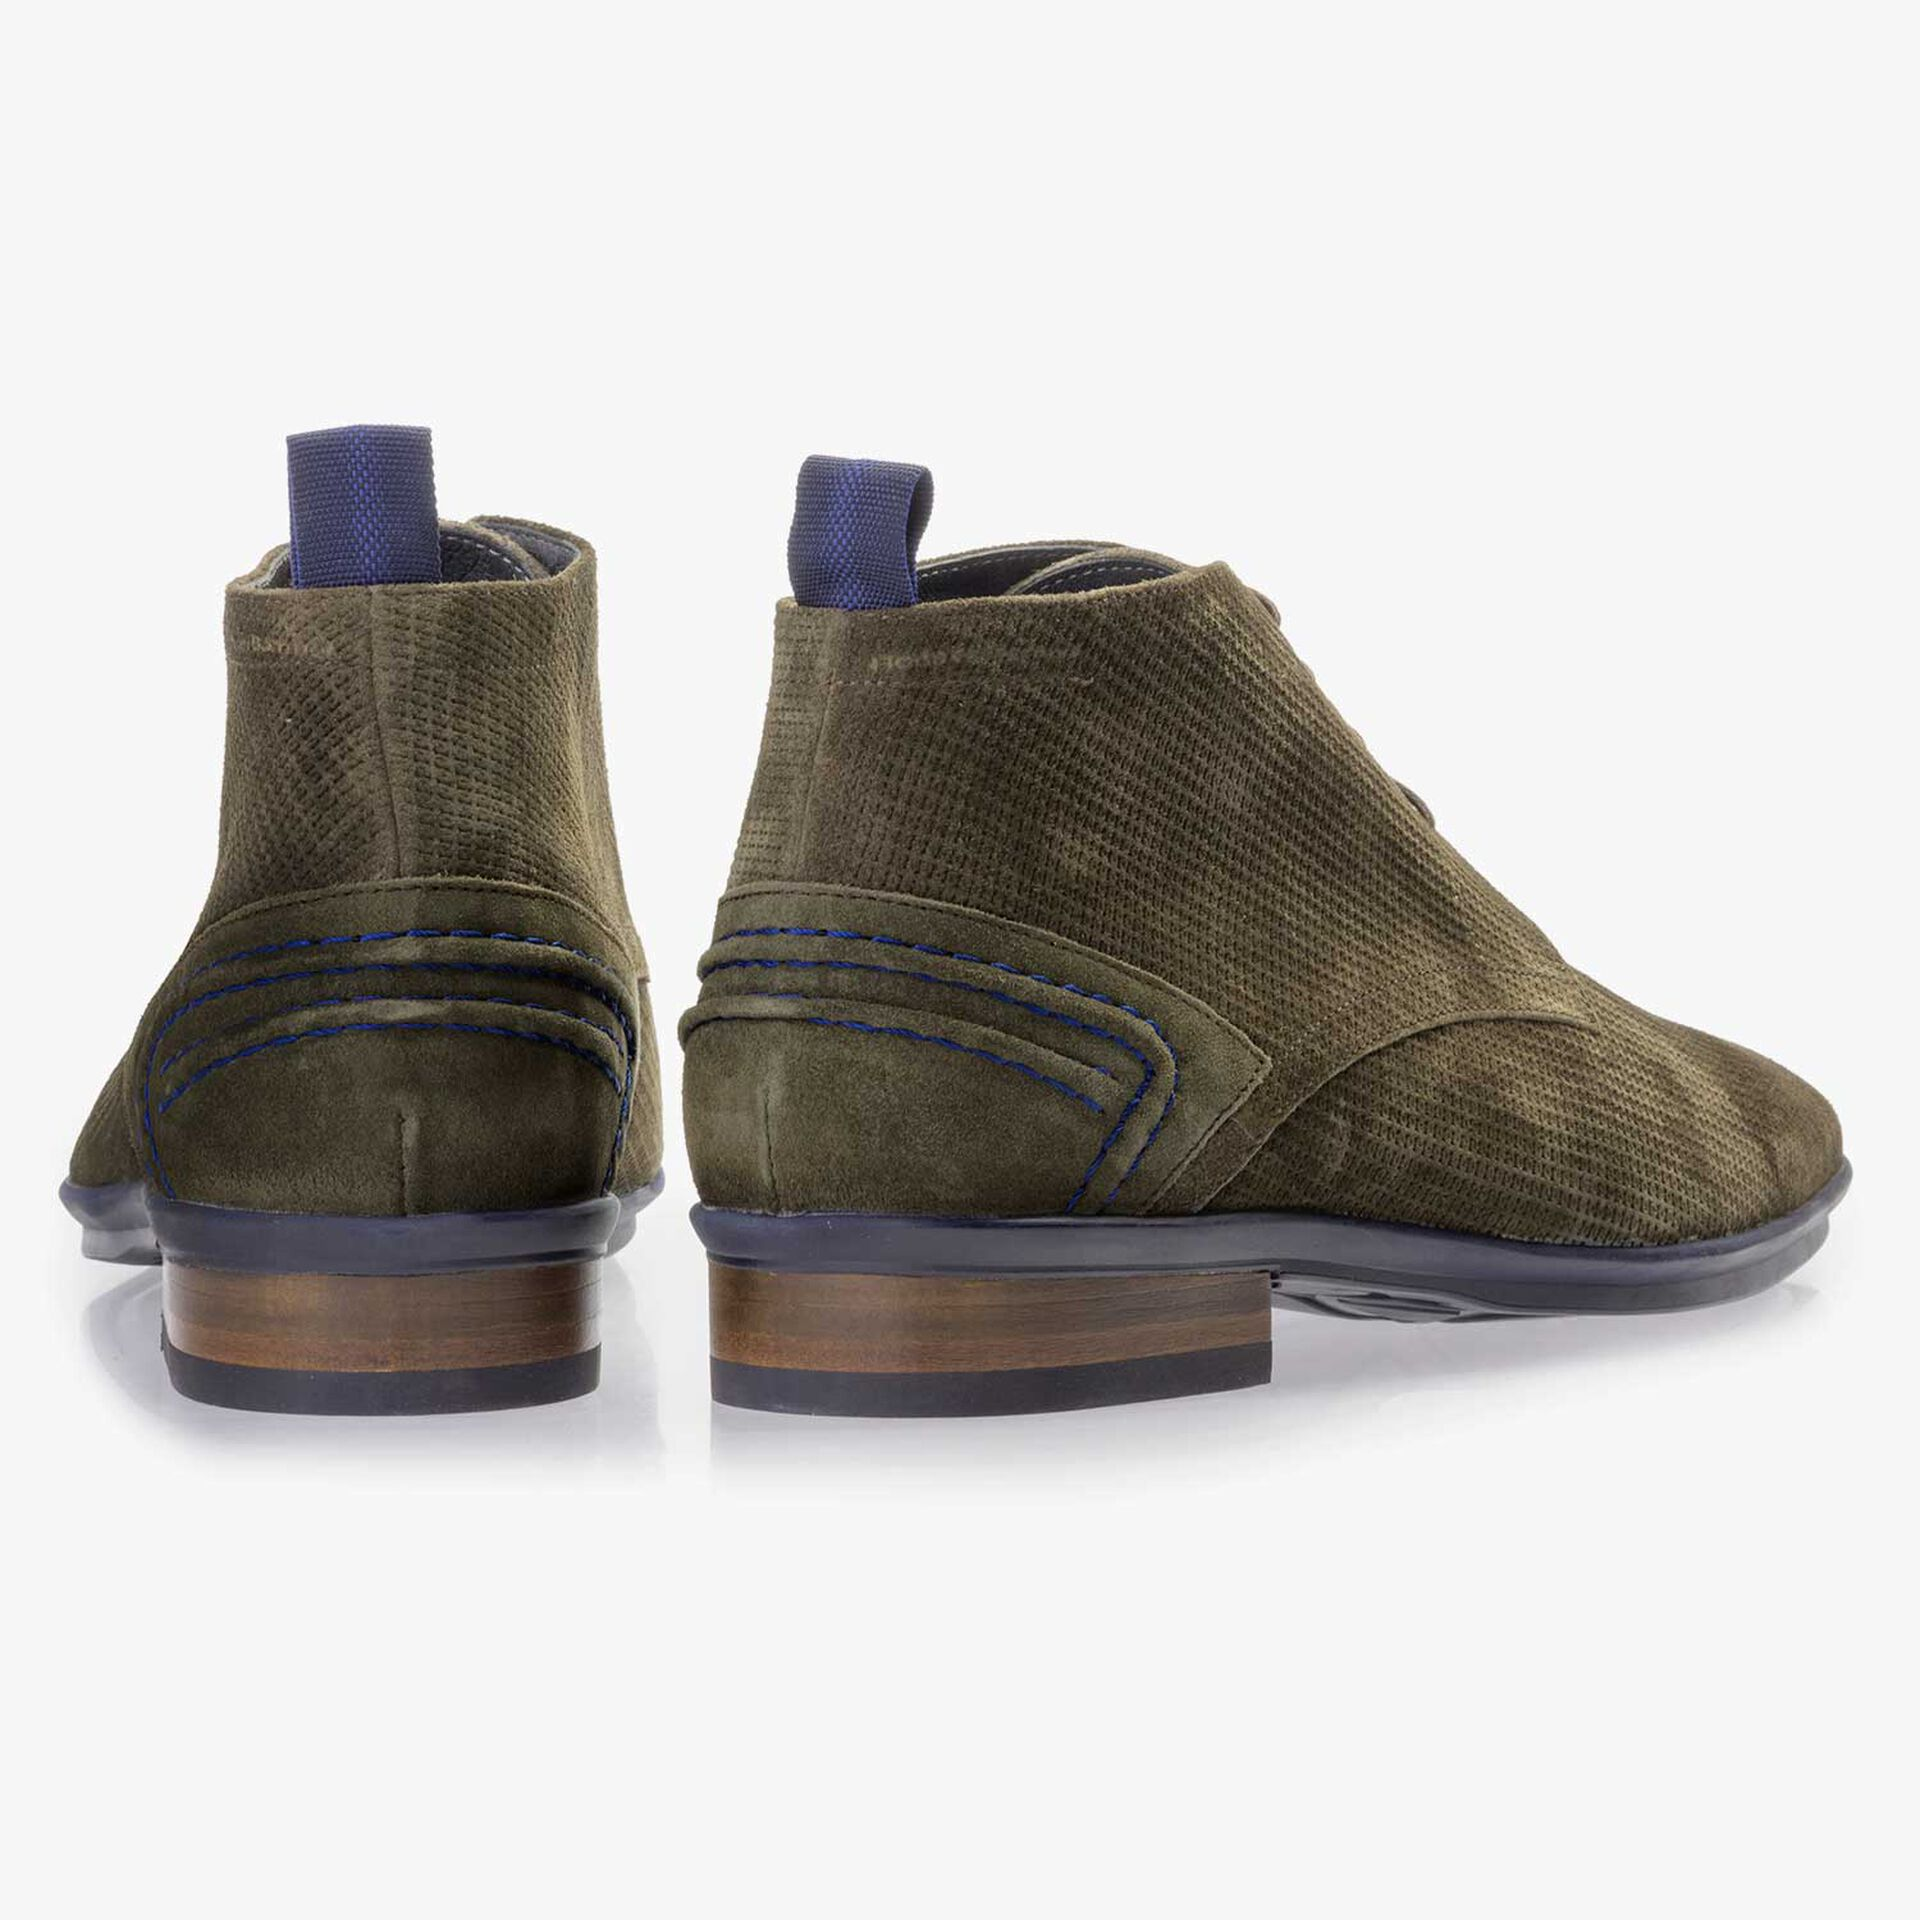 Olive green suede leather lace boot with pattern